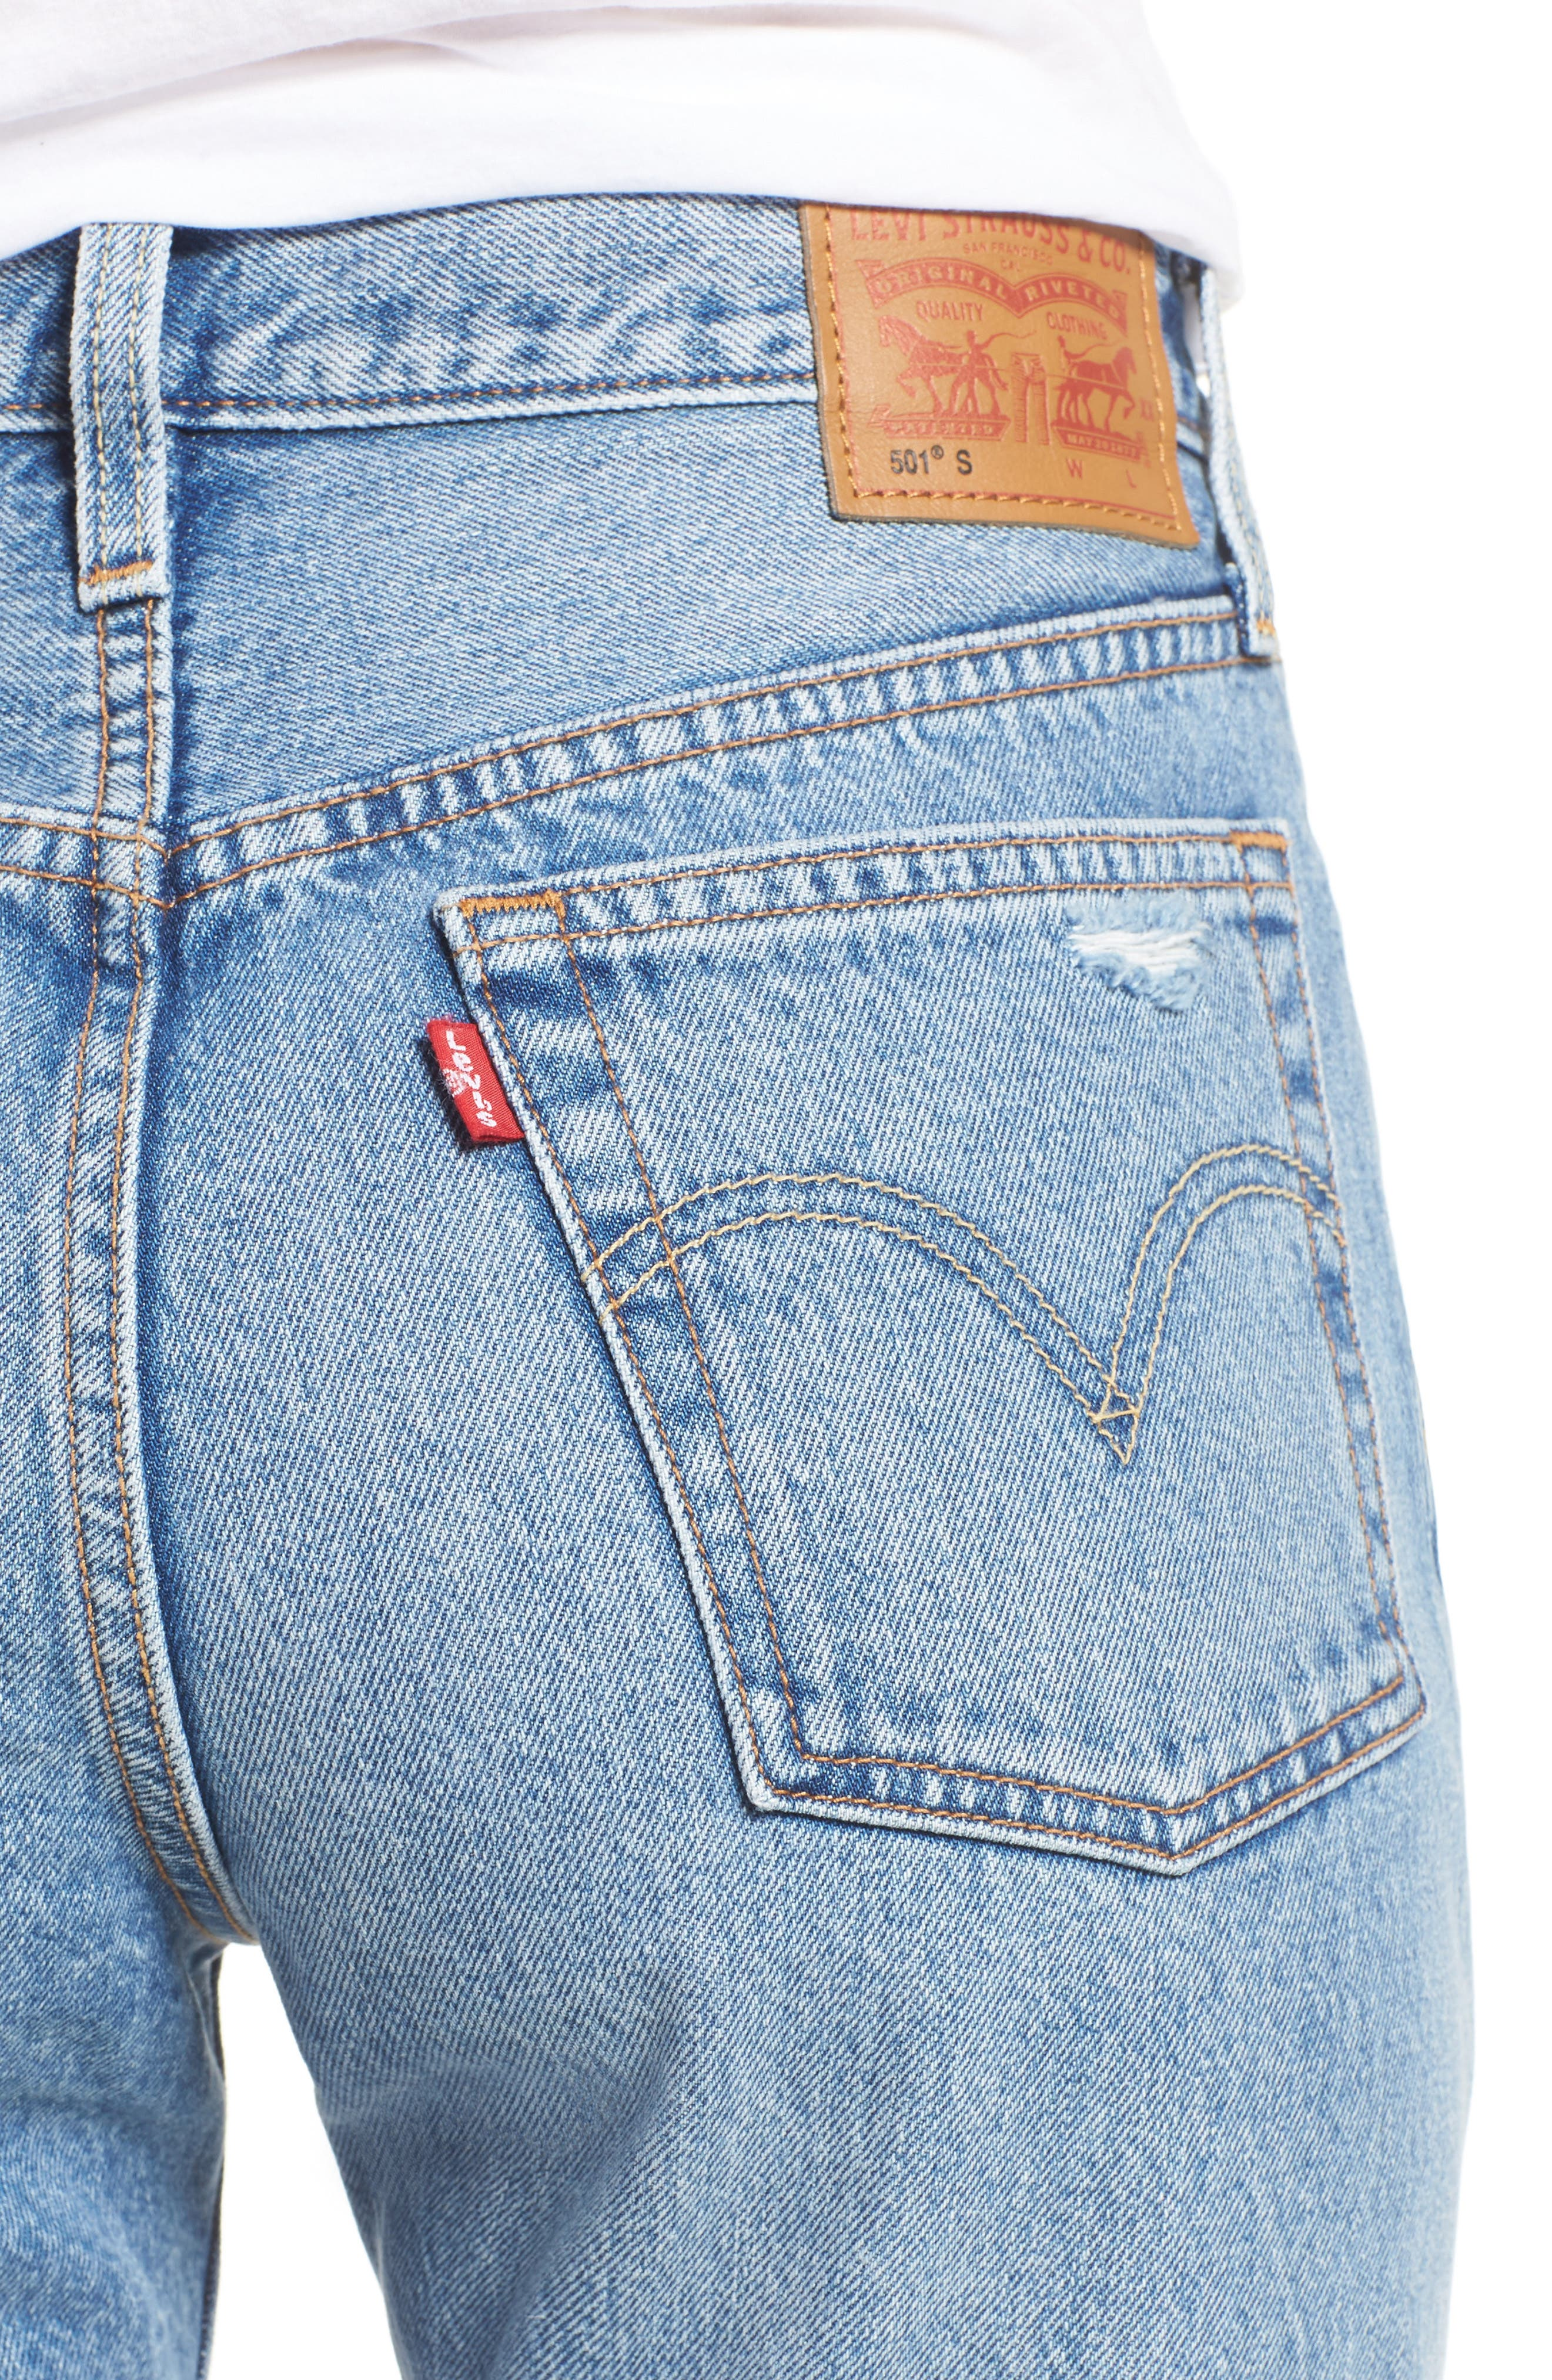 LEVI'S<SUP>®</SUP>, Levis<sup>®</sup> 501 Ripped Skinny Jeans, Alternate thumbnail 4, color, 400